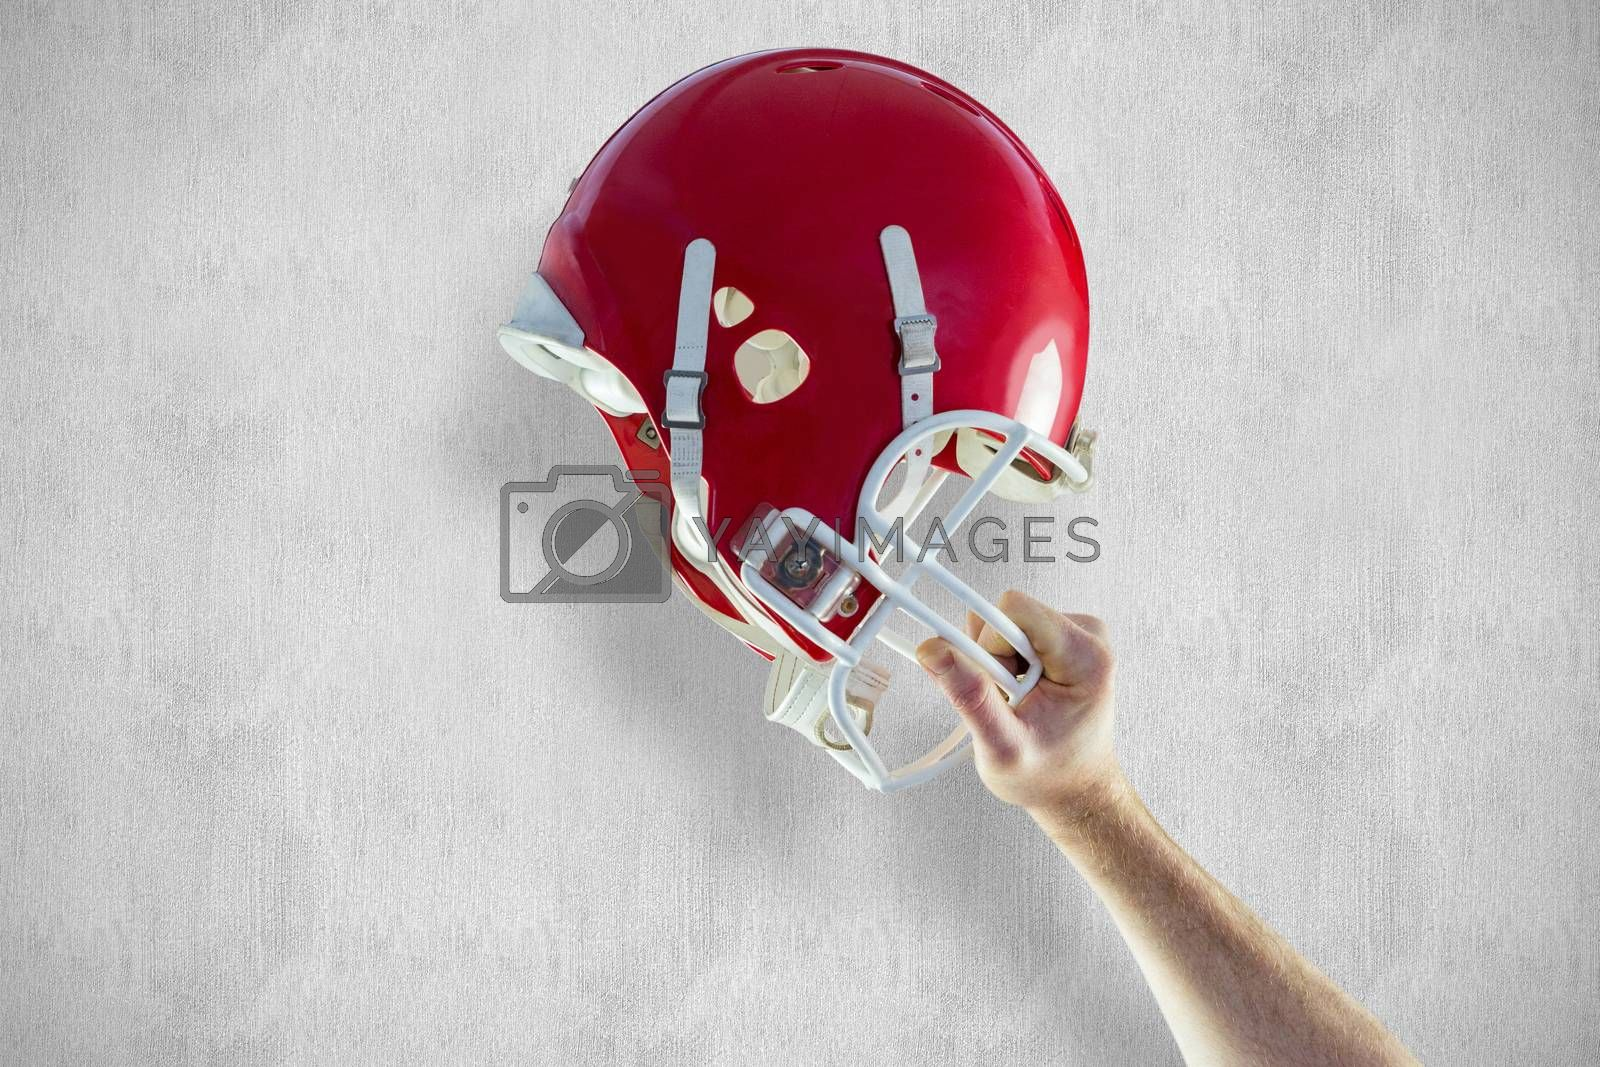 American football player holding up his helmet against white and grey background